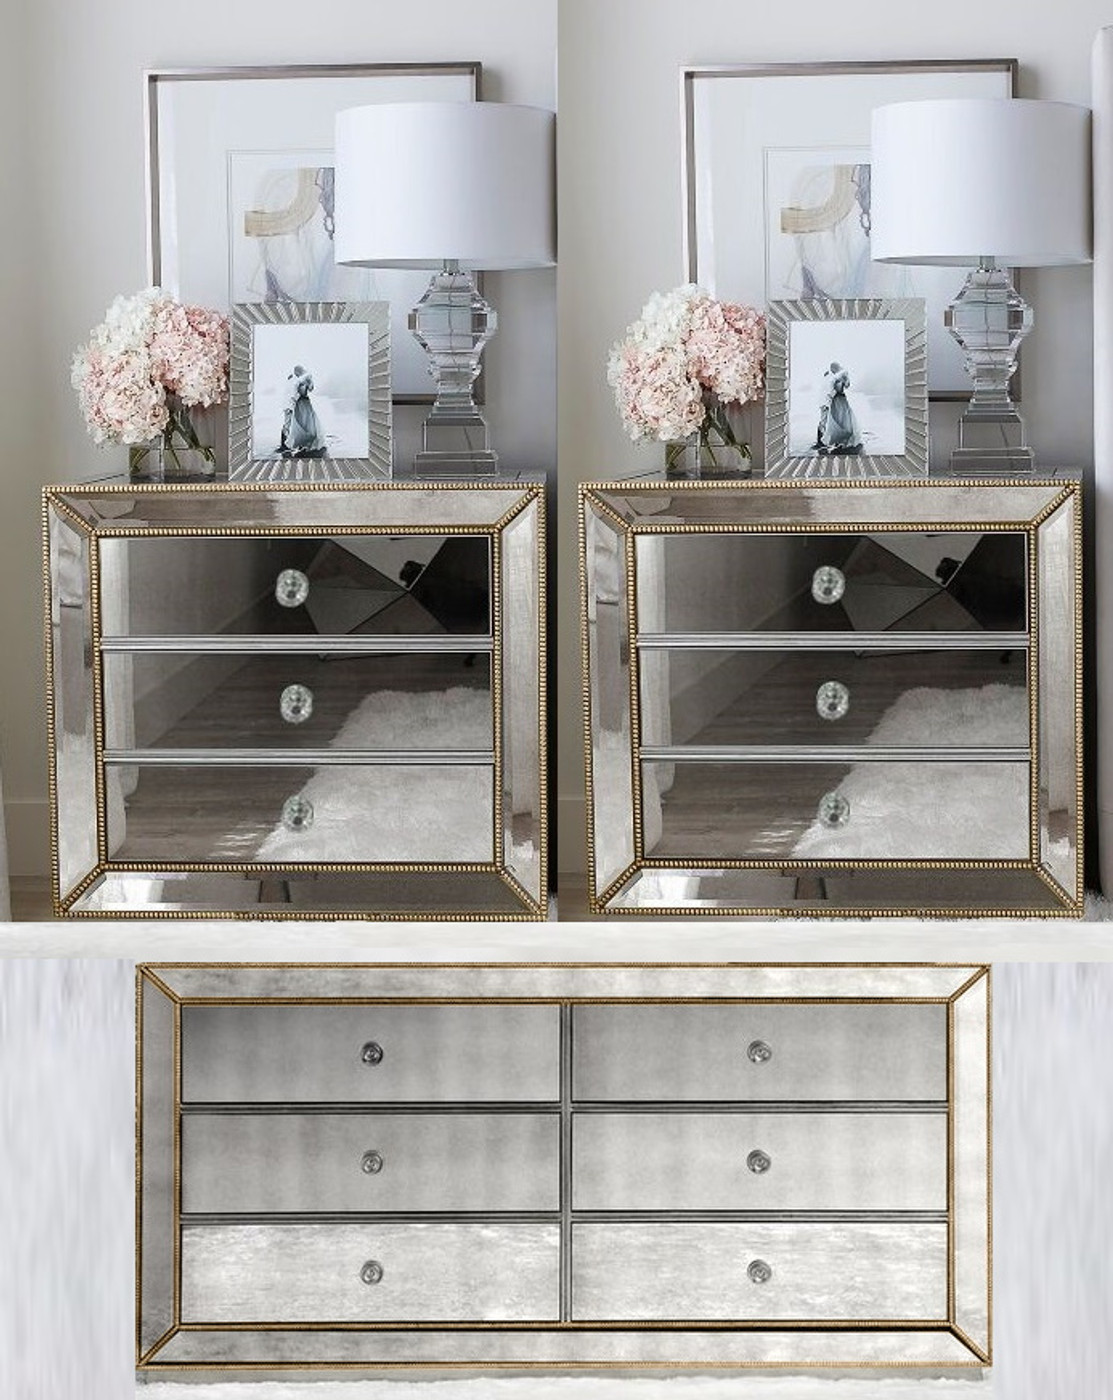 Mirrored Bedside Table With Drawers: Half Price Mirror Furniture Packages. Mirrored Chest Of